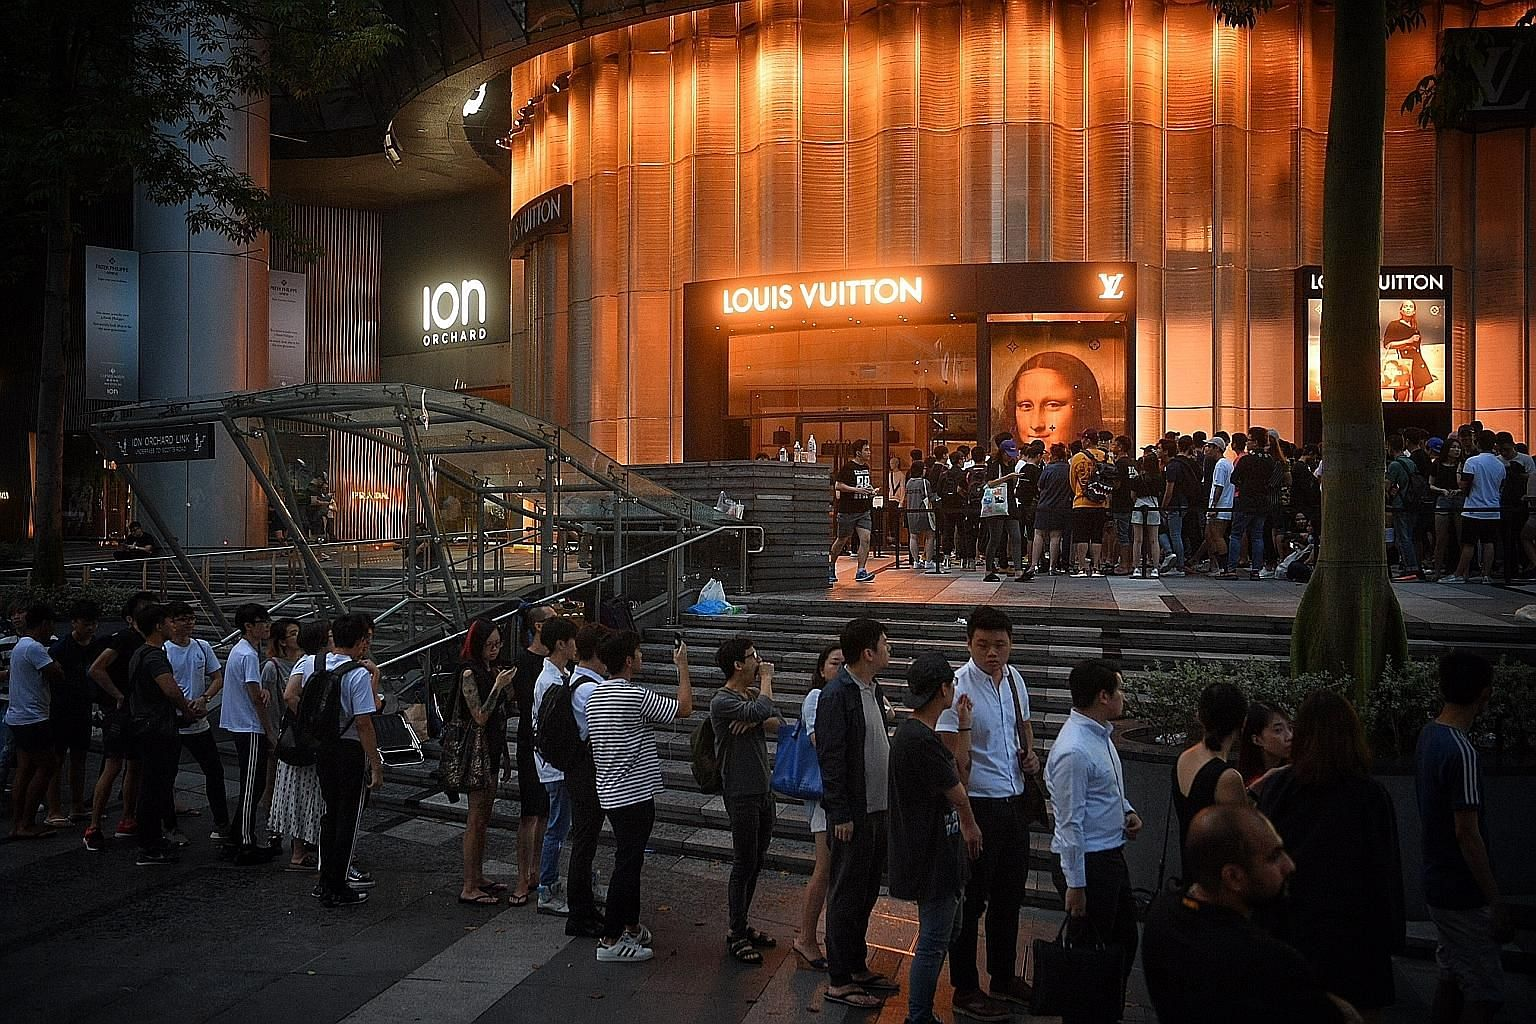 The queue to get a raffle ticket for early access to the Louis Vuitton limited-edition collaboration with streetwear label Supreme outside the Louis Vuitton store at Ion Orchard at 7am yesterday.